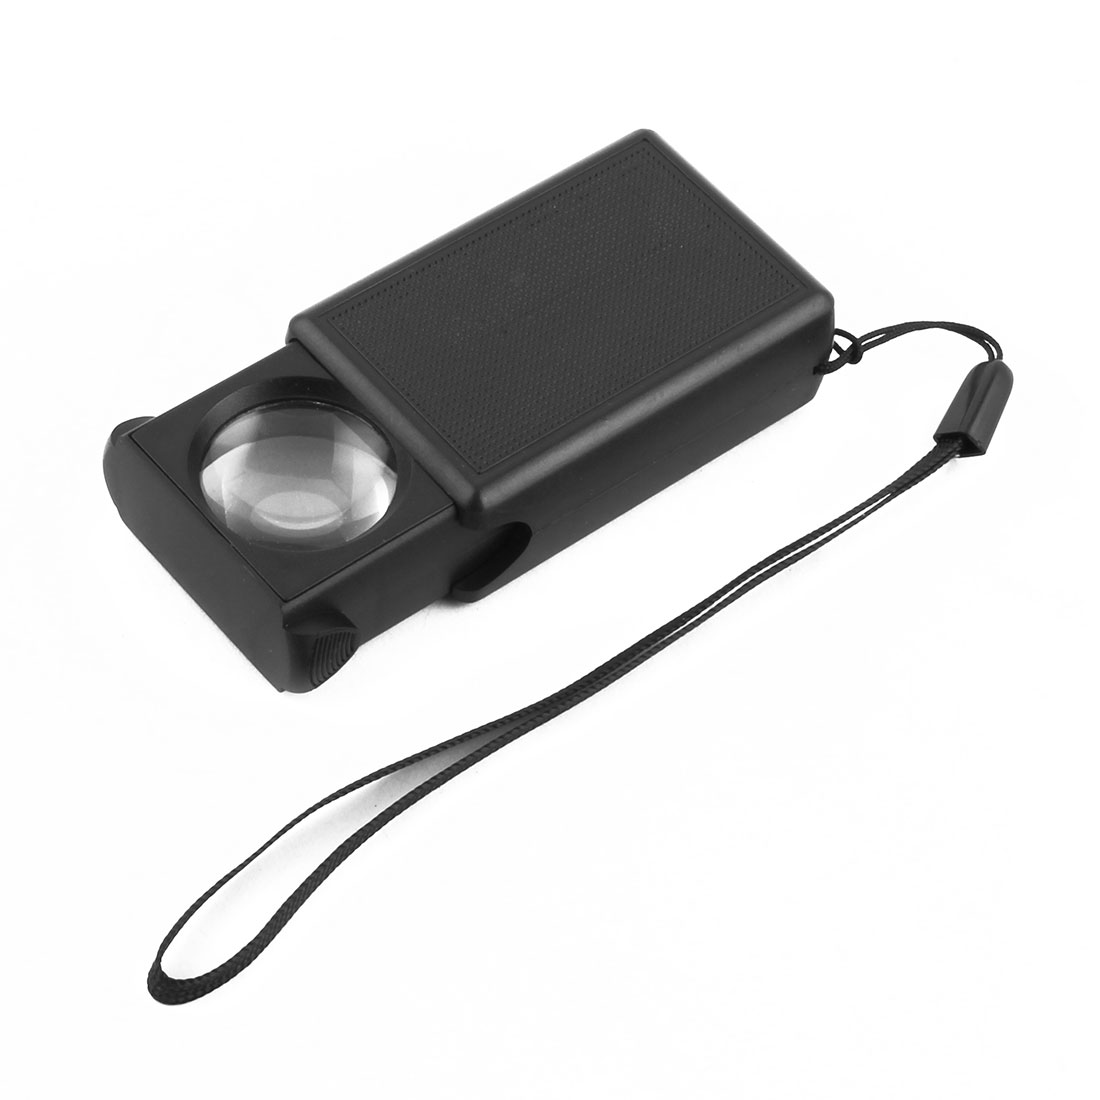 Diamond Jewelry  Plastic Electric Magnifying LED Light Magnifier Glass - image 4 de 4